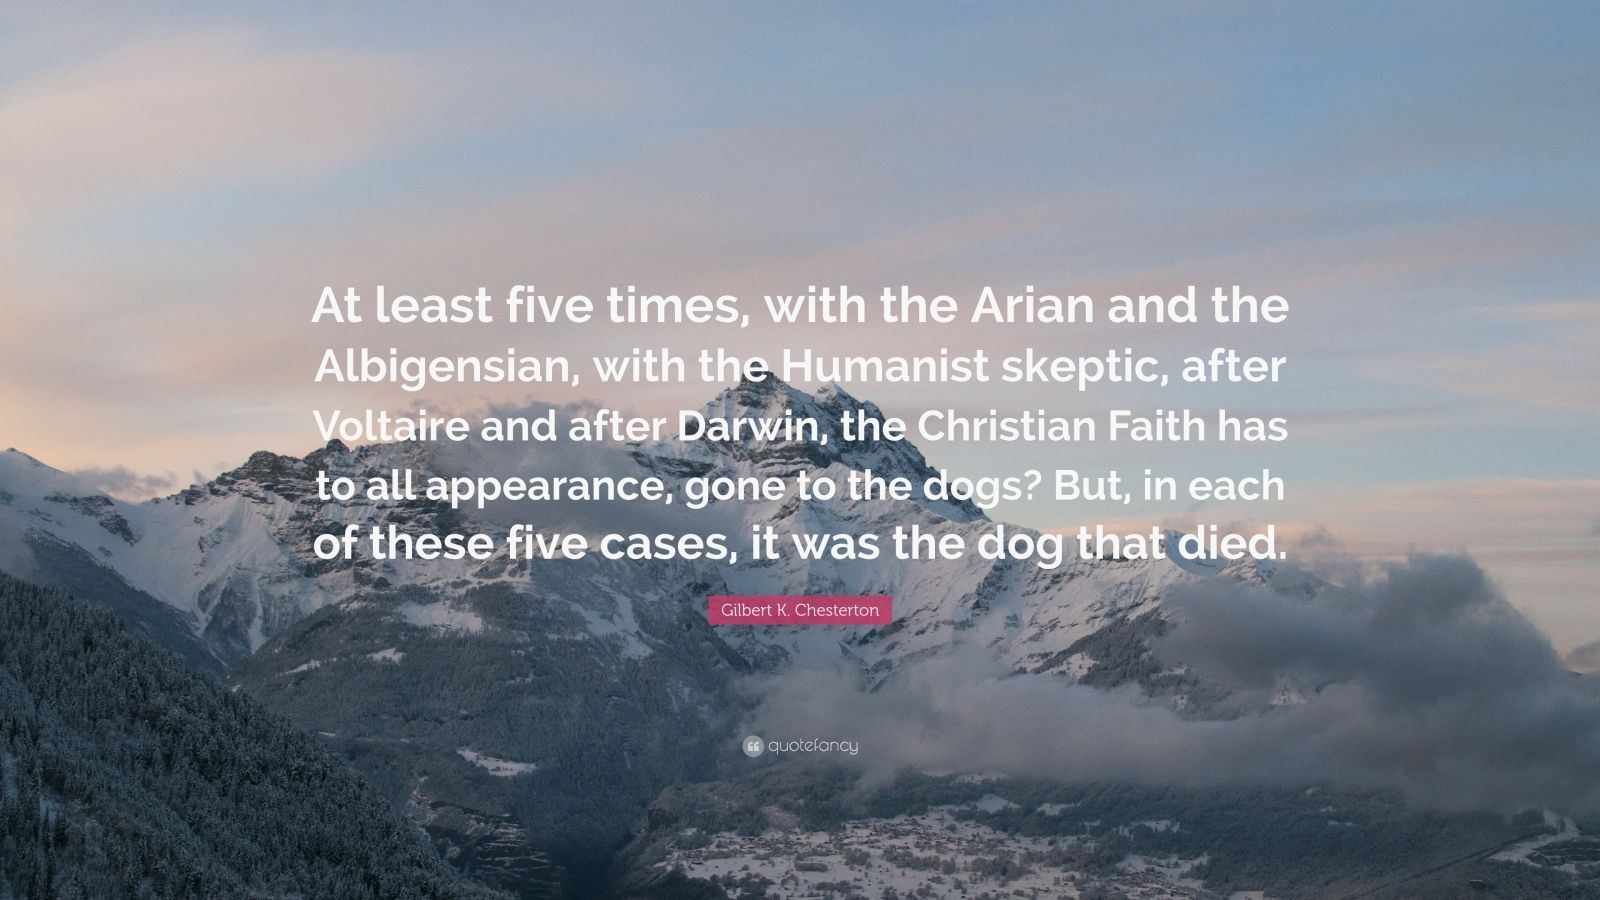 "Gilbert K. Chesterton Quote: ""At least five times, with the Arian and the Albigensian, with the Humanist skeptic, after Voltaire and after Darwin, the Christian Faith has to all appearance, gone to the dogs? But, in each of these five cases, it was the dog that died."""